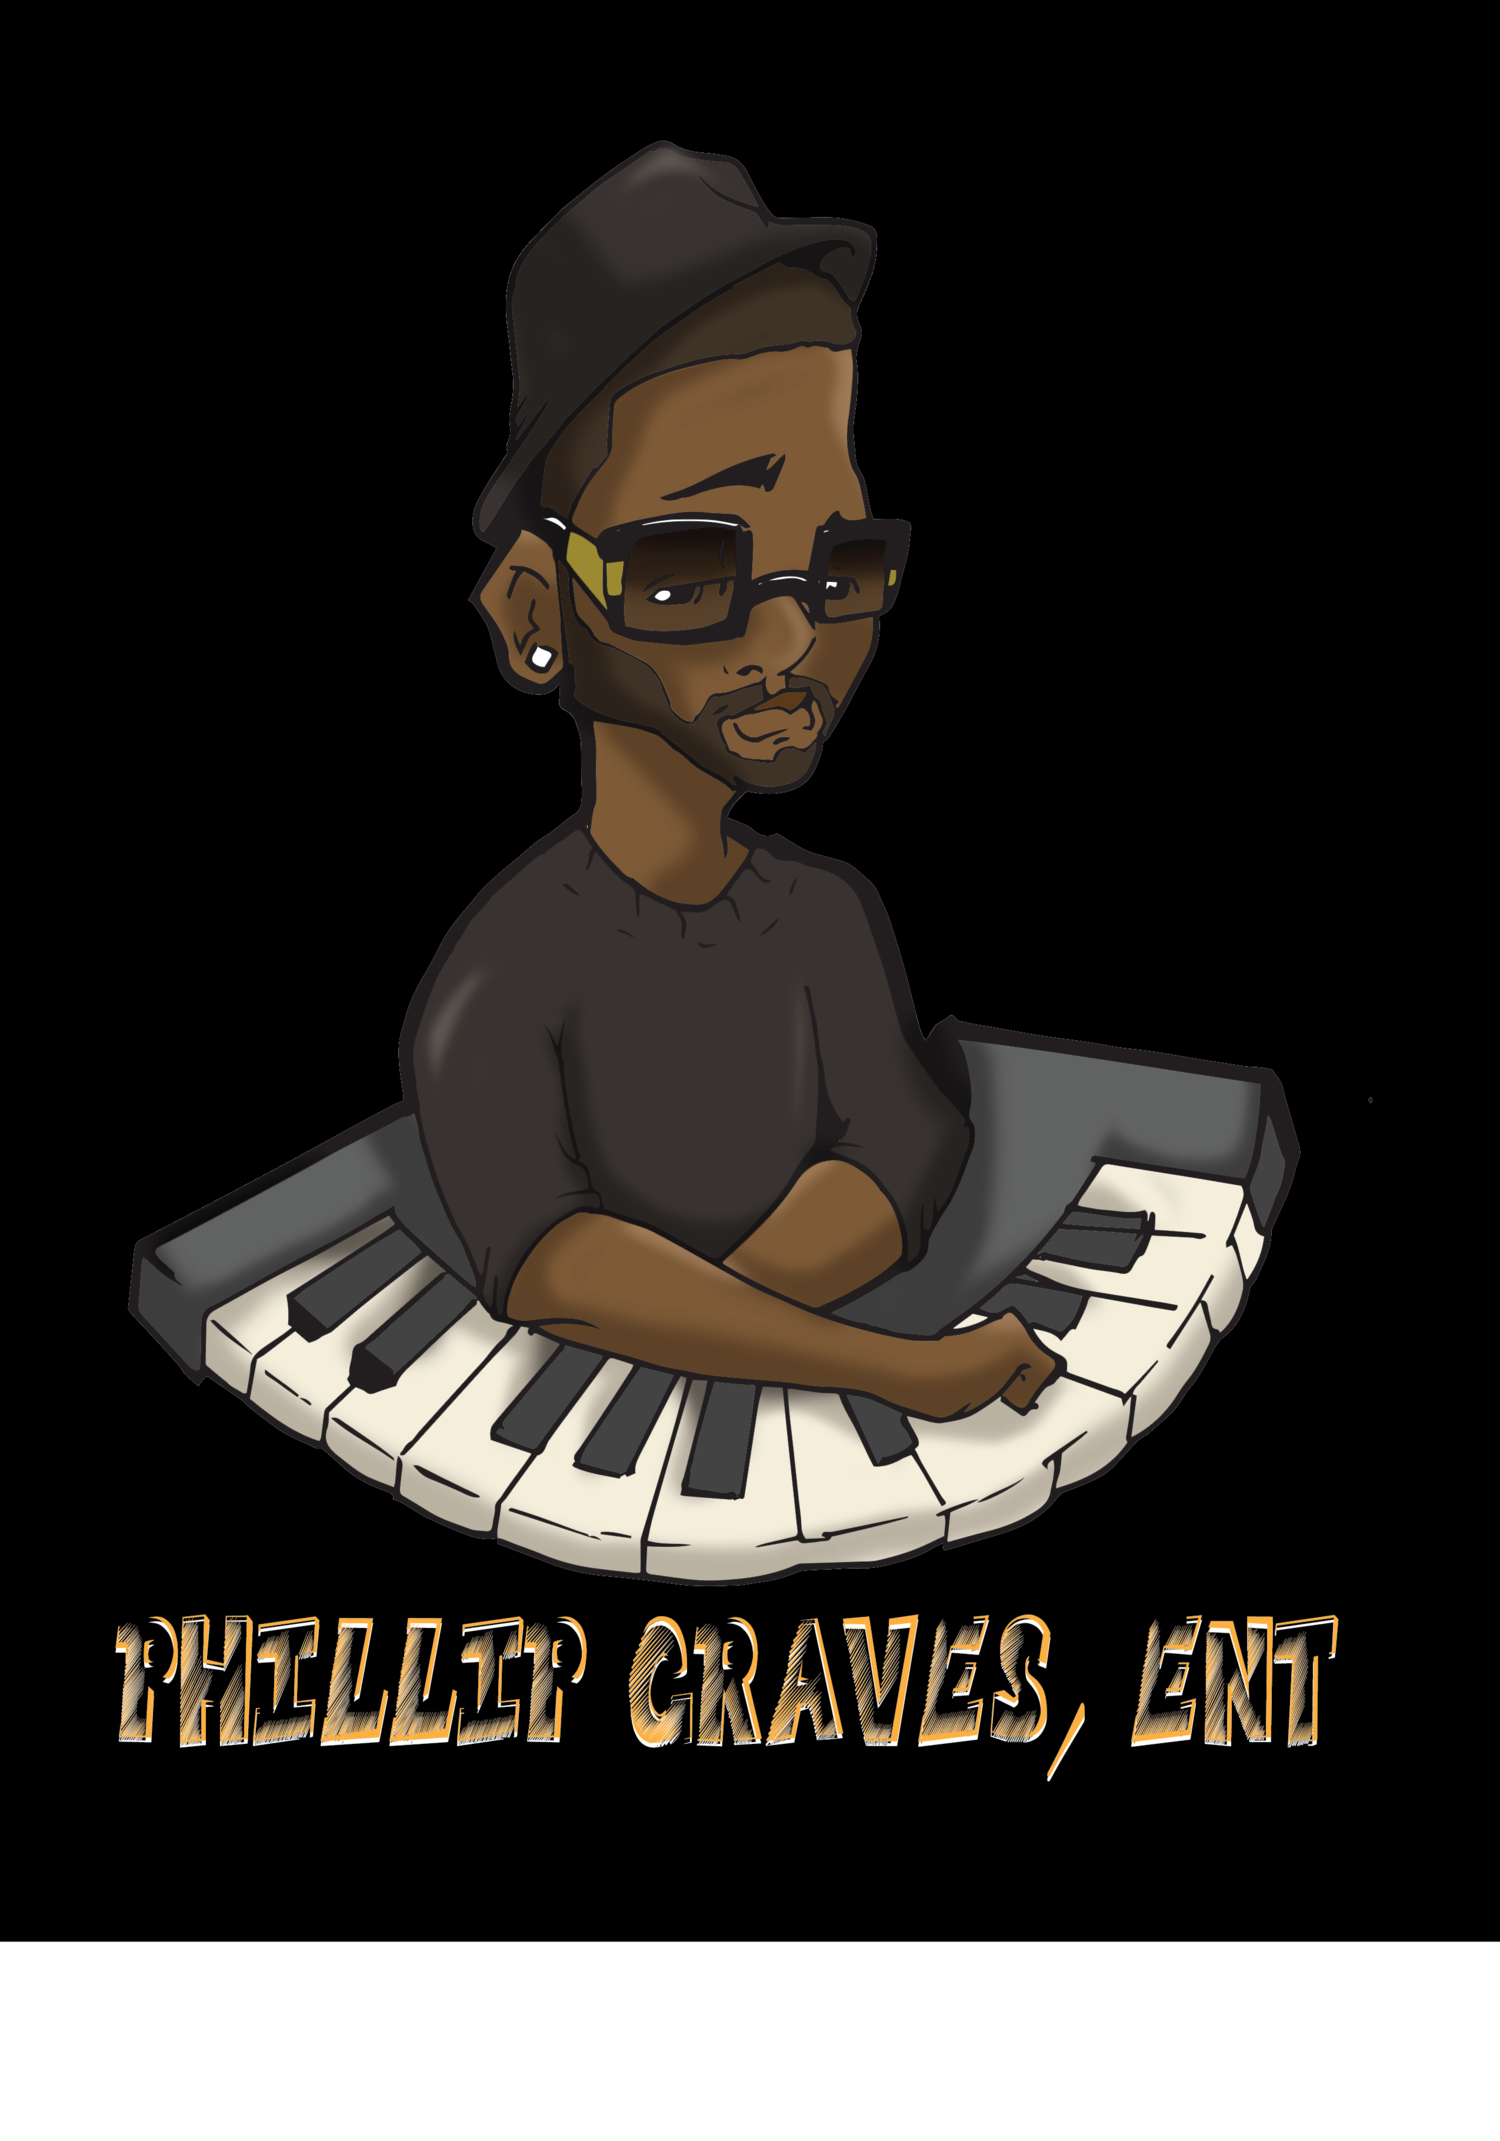 Phillip Graves Entertainment, LLC.